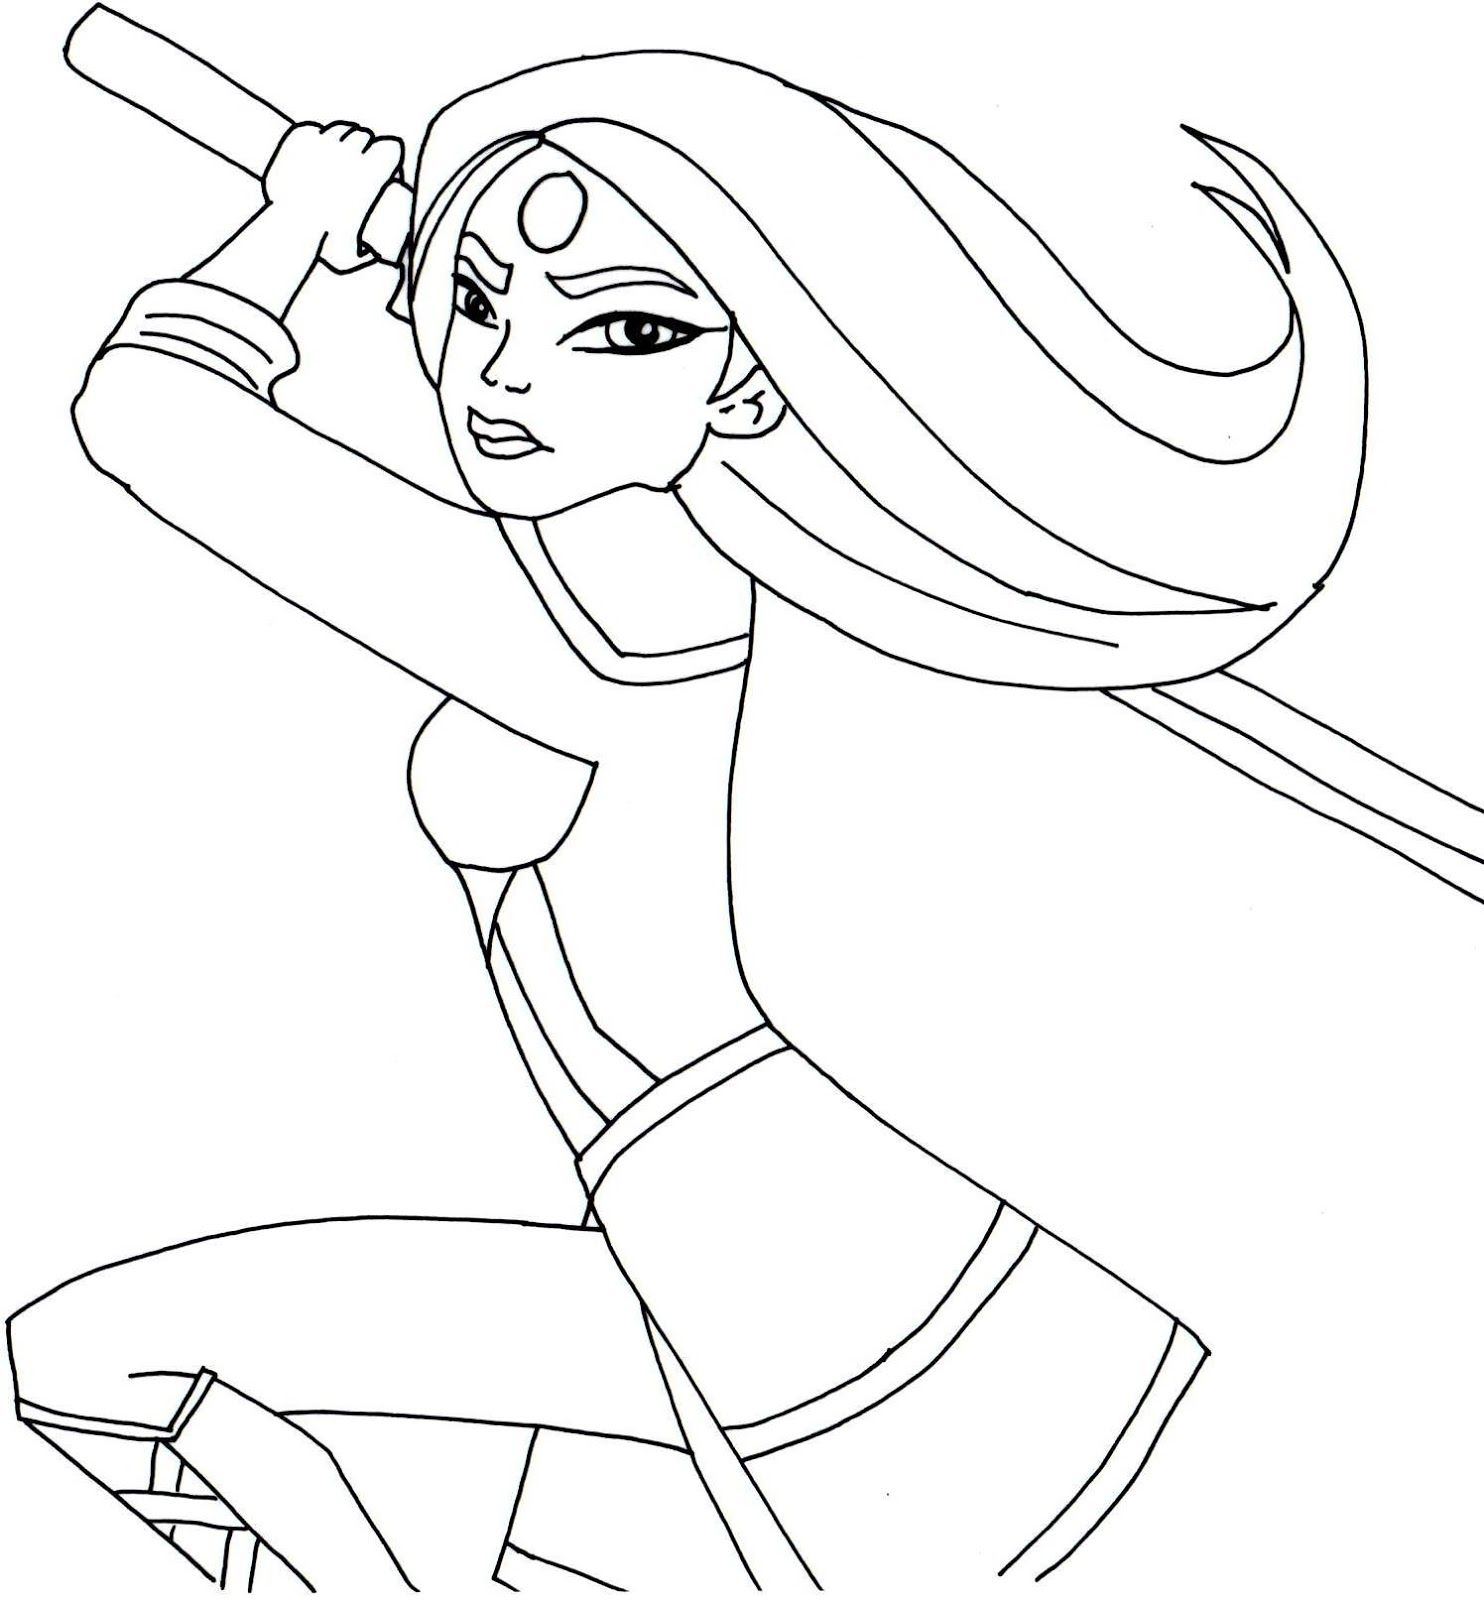 Barbie Superhero Coloring Pages  Collection 2e - To print for your project